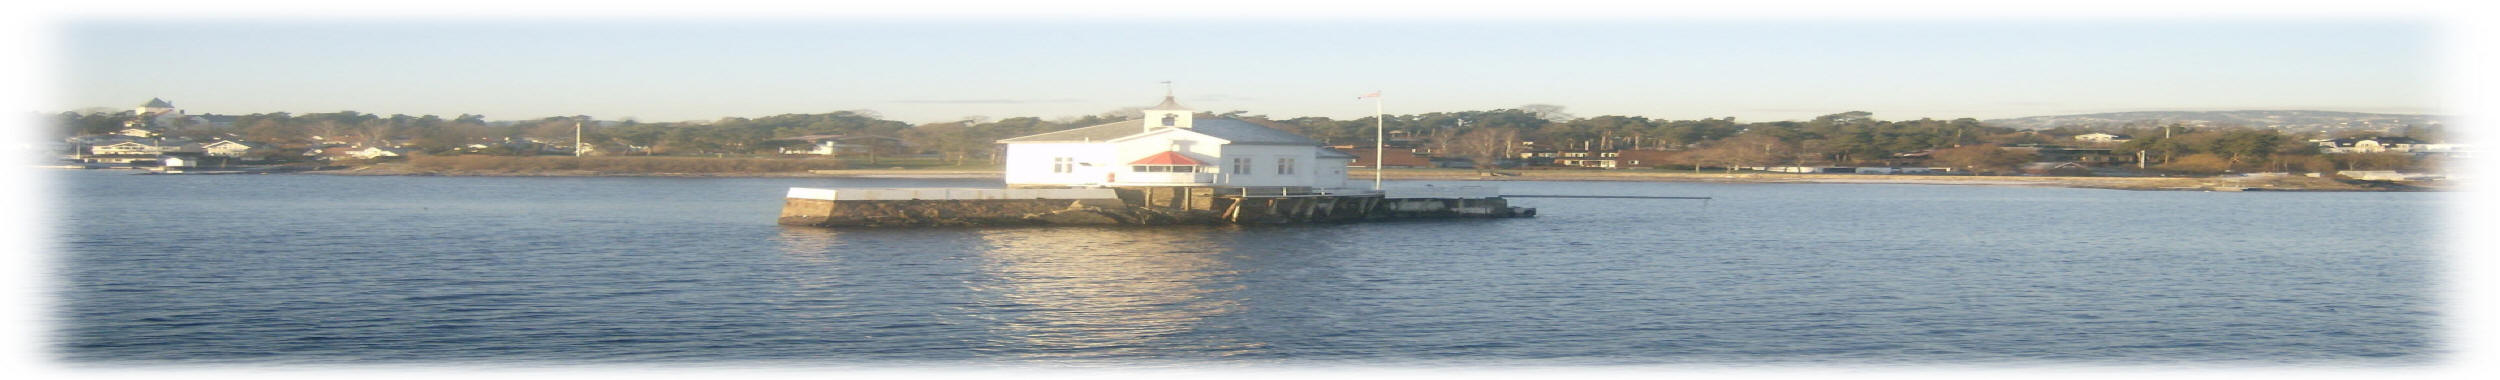 House at Sea. Oslo. Norway. Copy-Right InterConsult21.